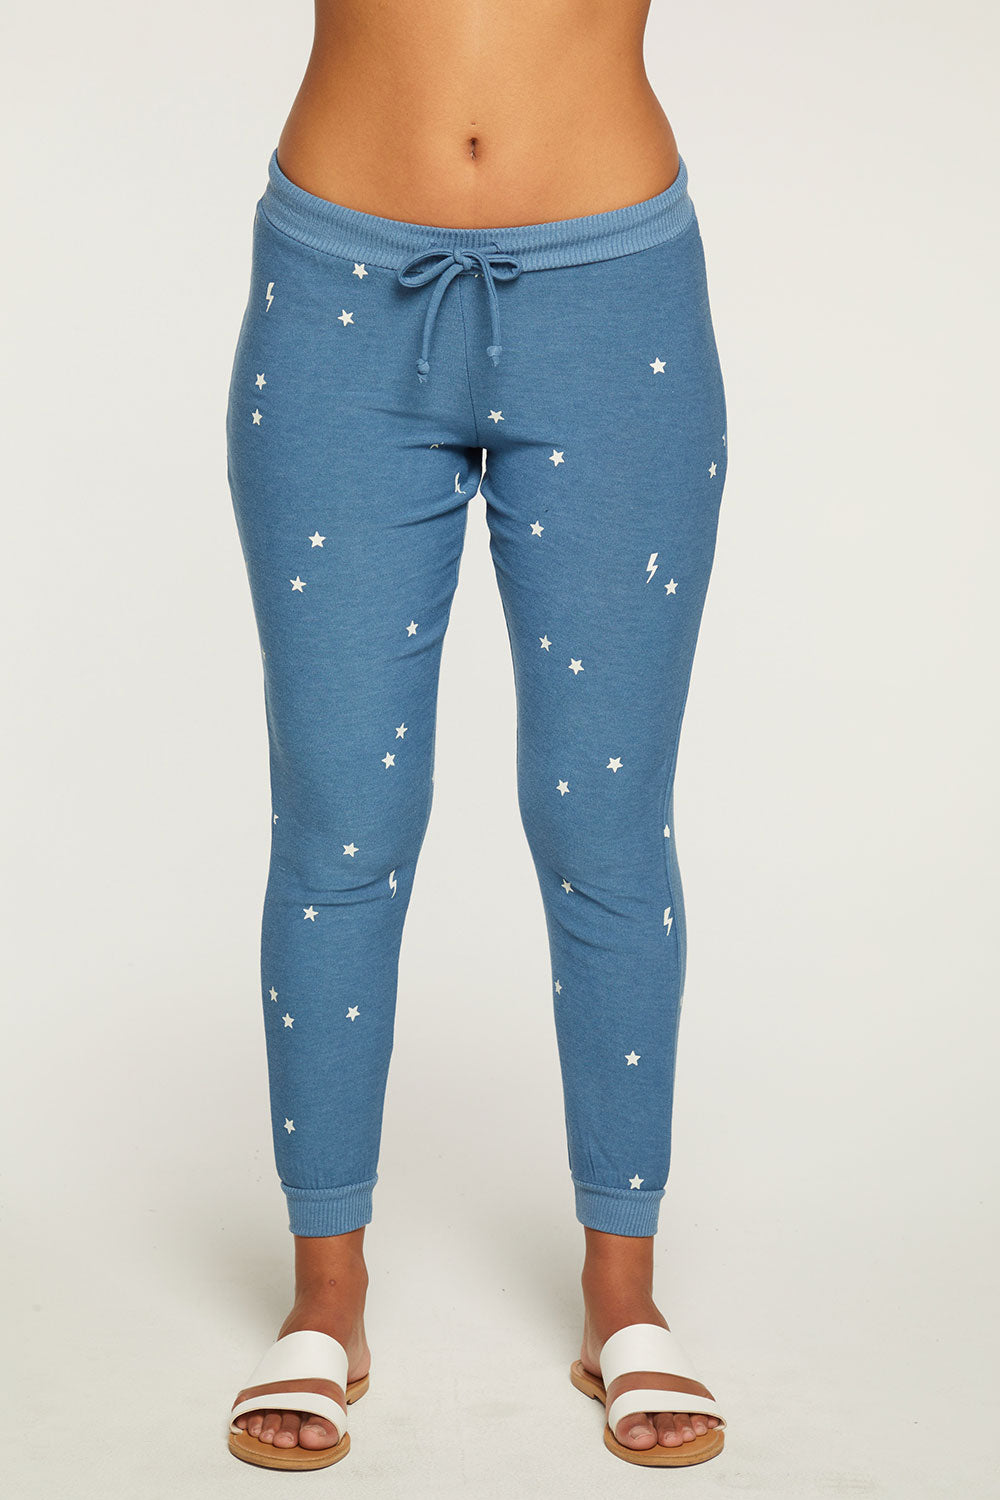 Starry Bolts Pant WOMENS chaserbrand4.myshopify.com